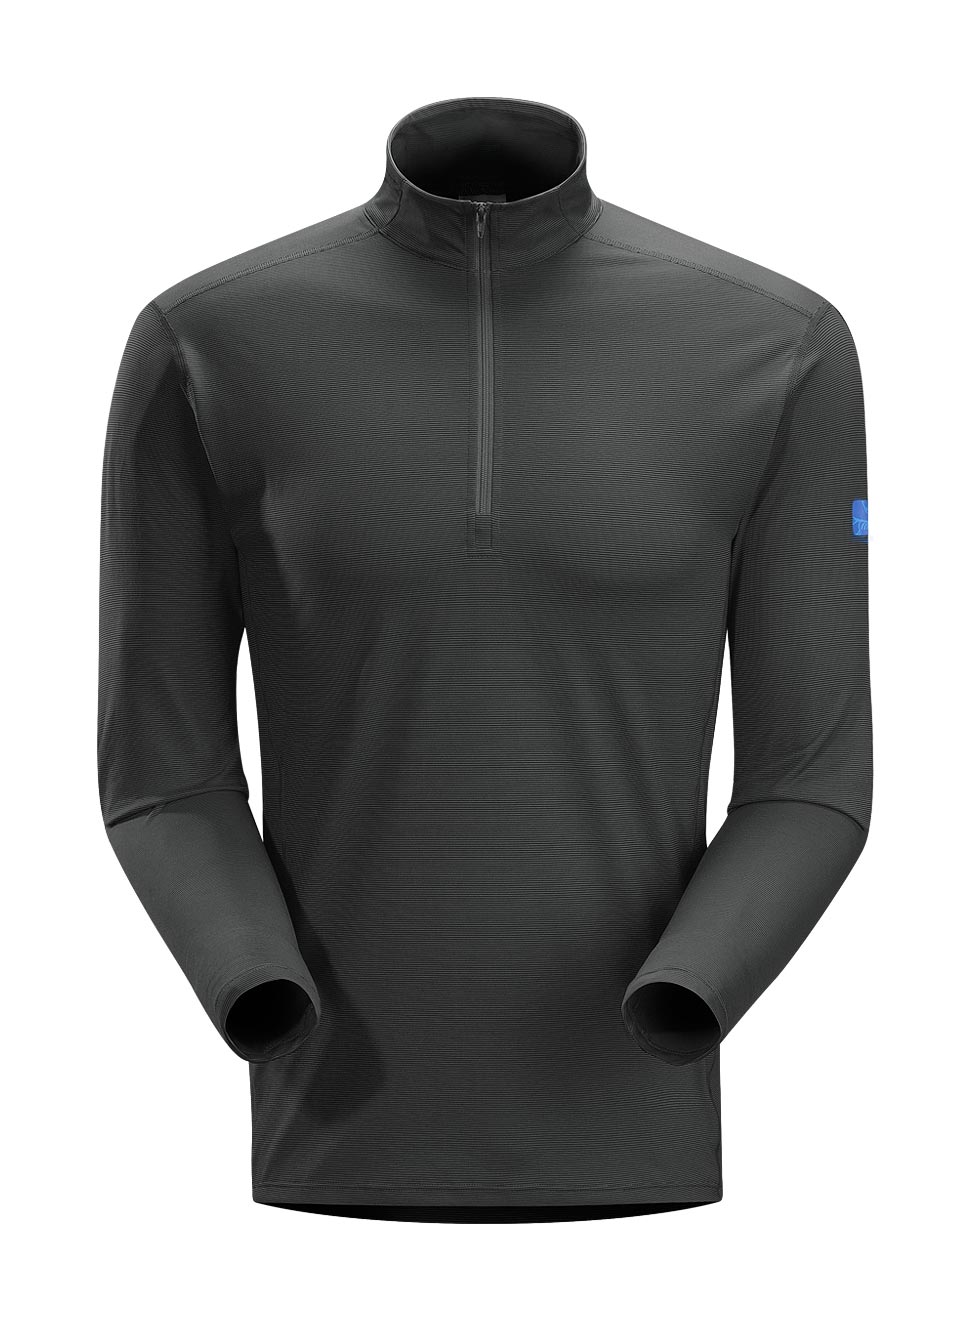 Arcteryx Graphite Phase SL Zip Neck